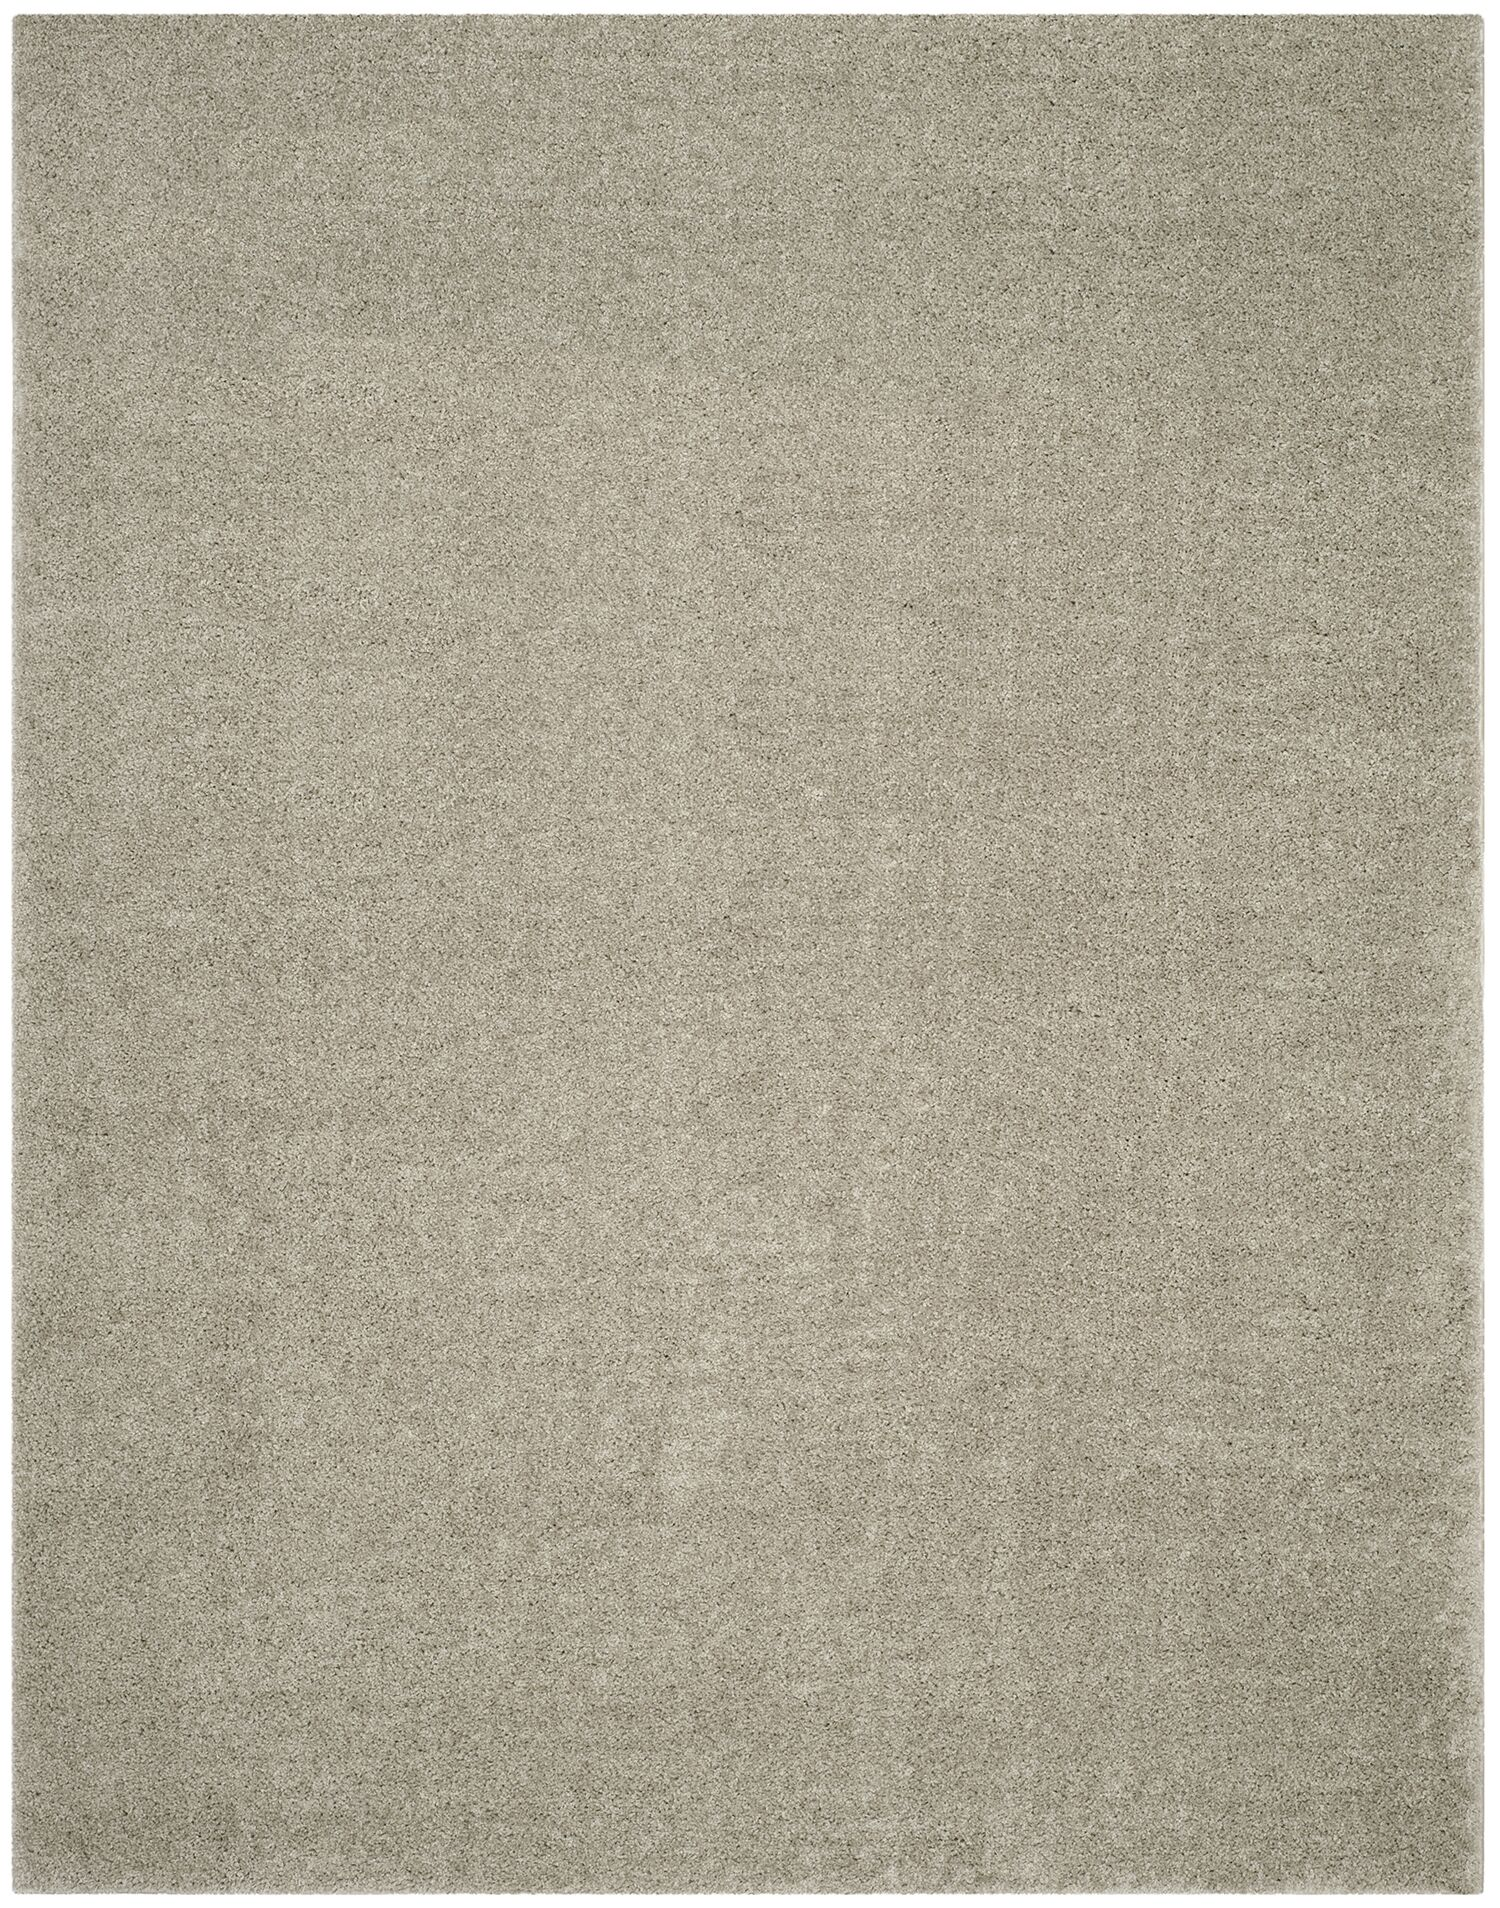 Curran Silver Area Rug Rug Size: Runner 2'3